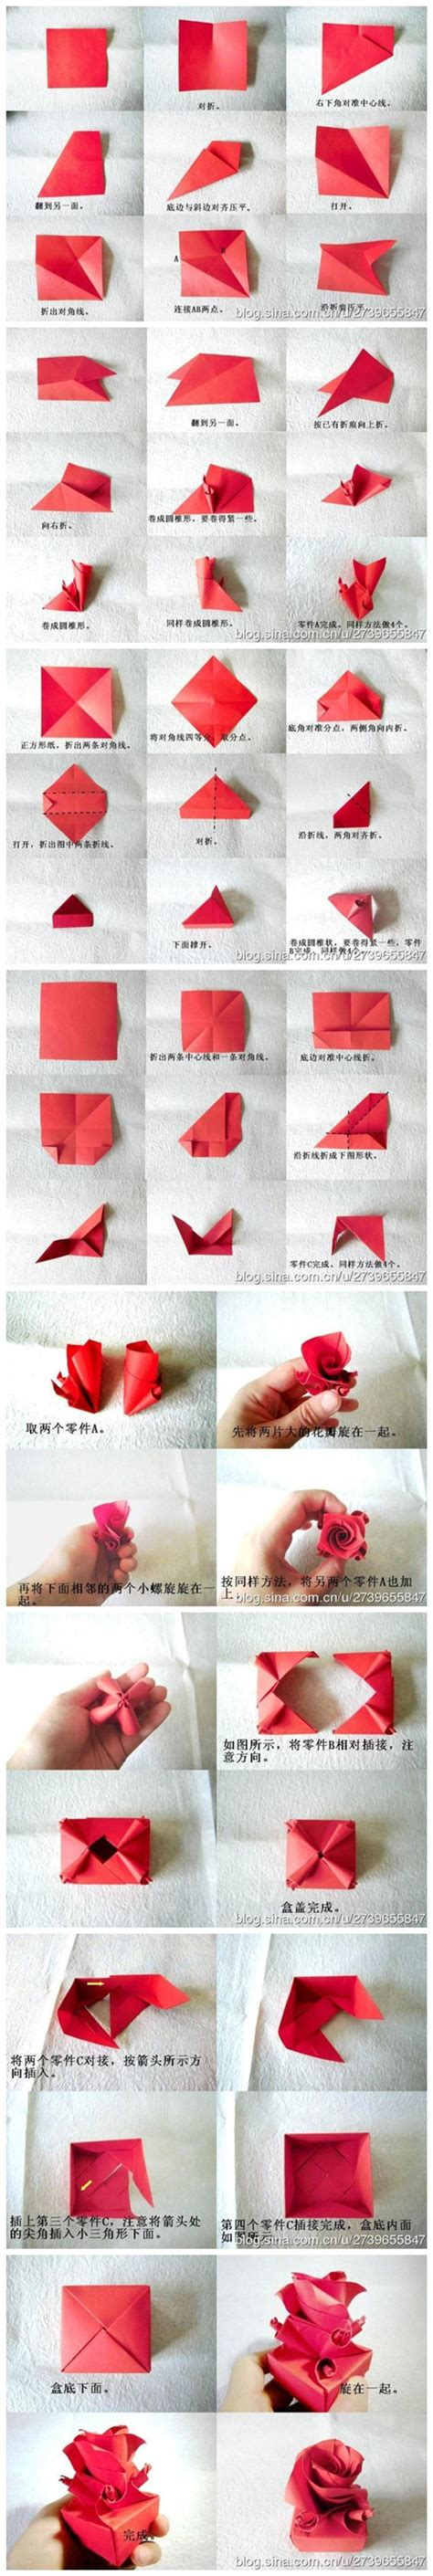 Paper Crafts Tutorials - how to fold origami paper craft box for